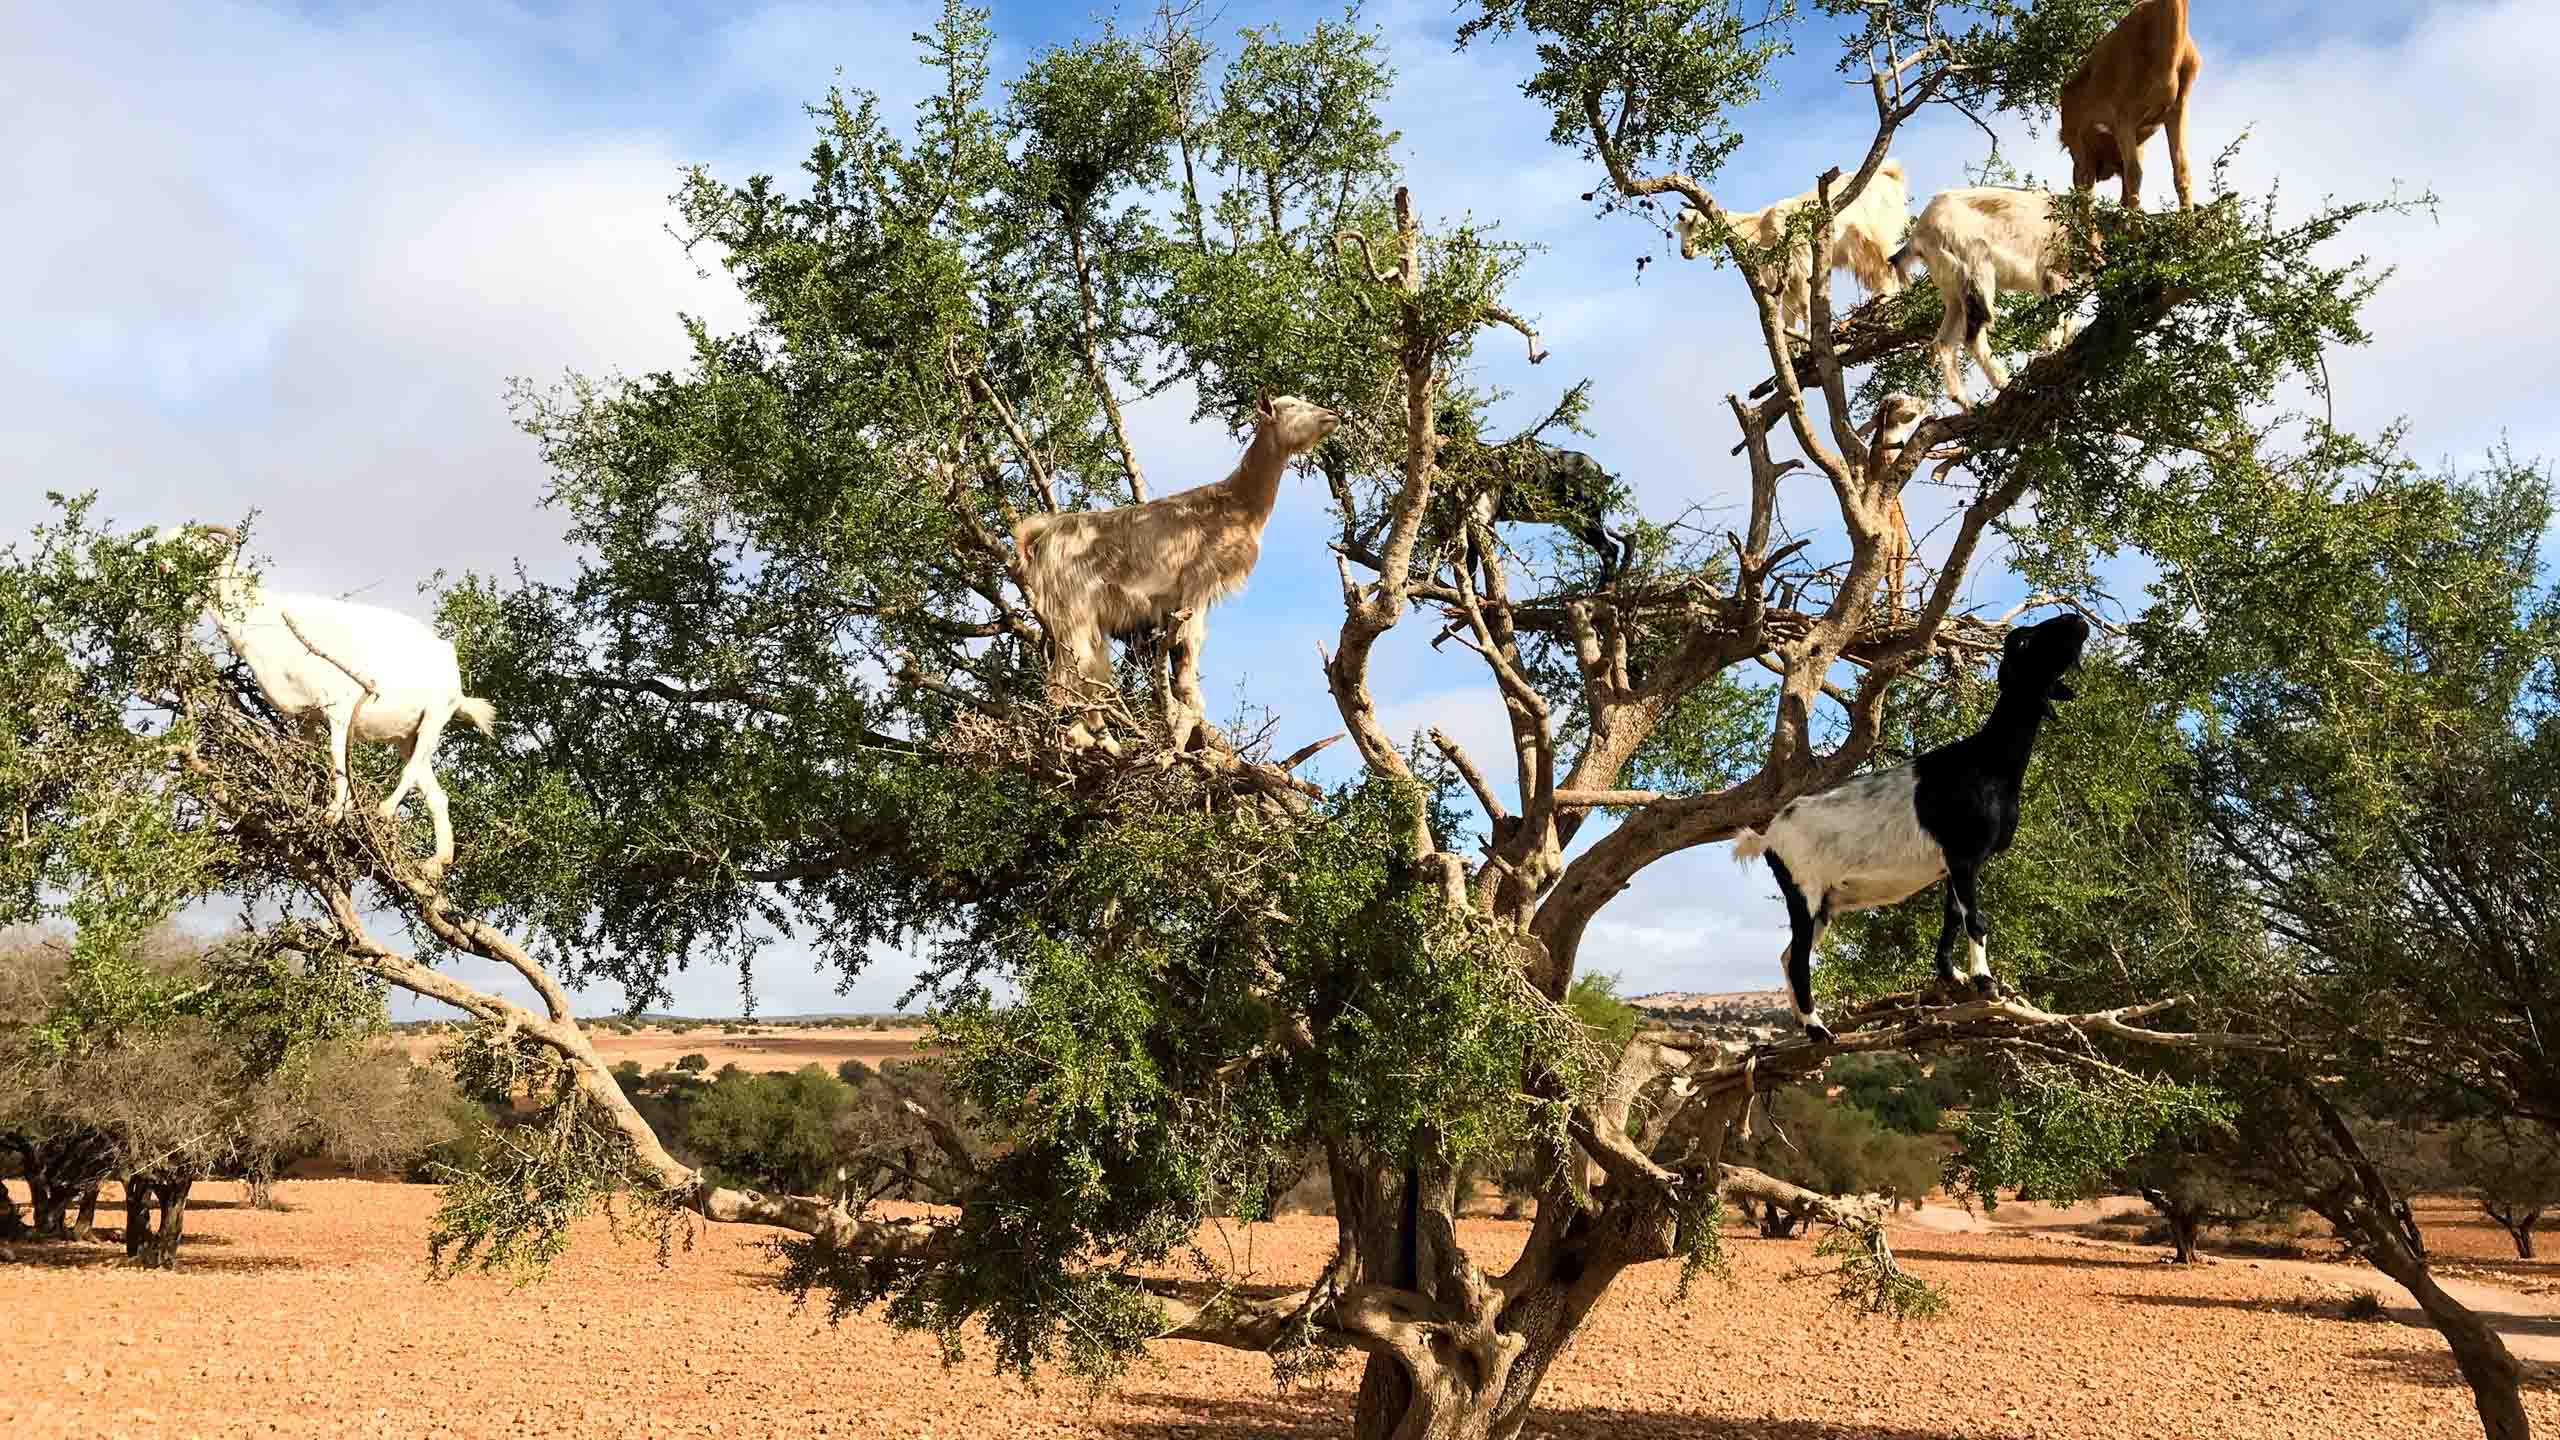 Goats in a tree in the Morocco desert